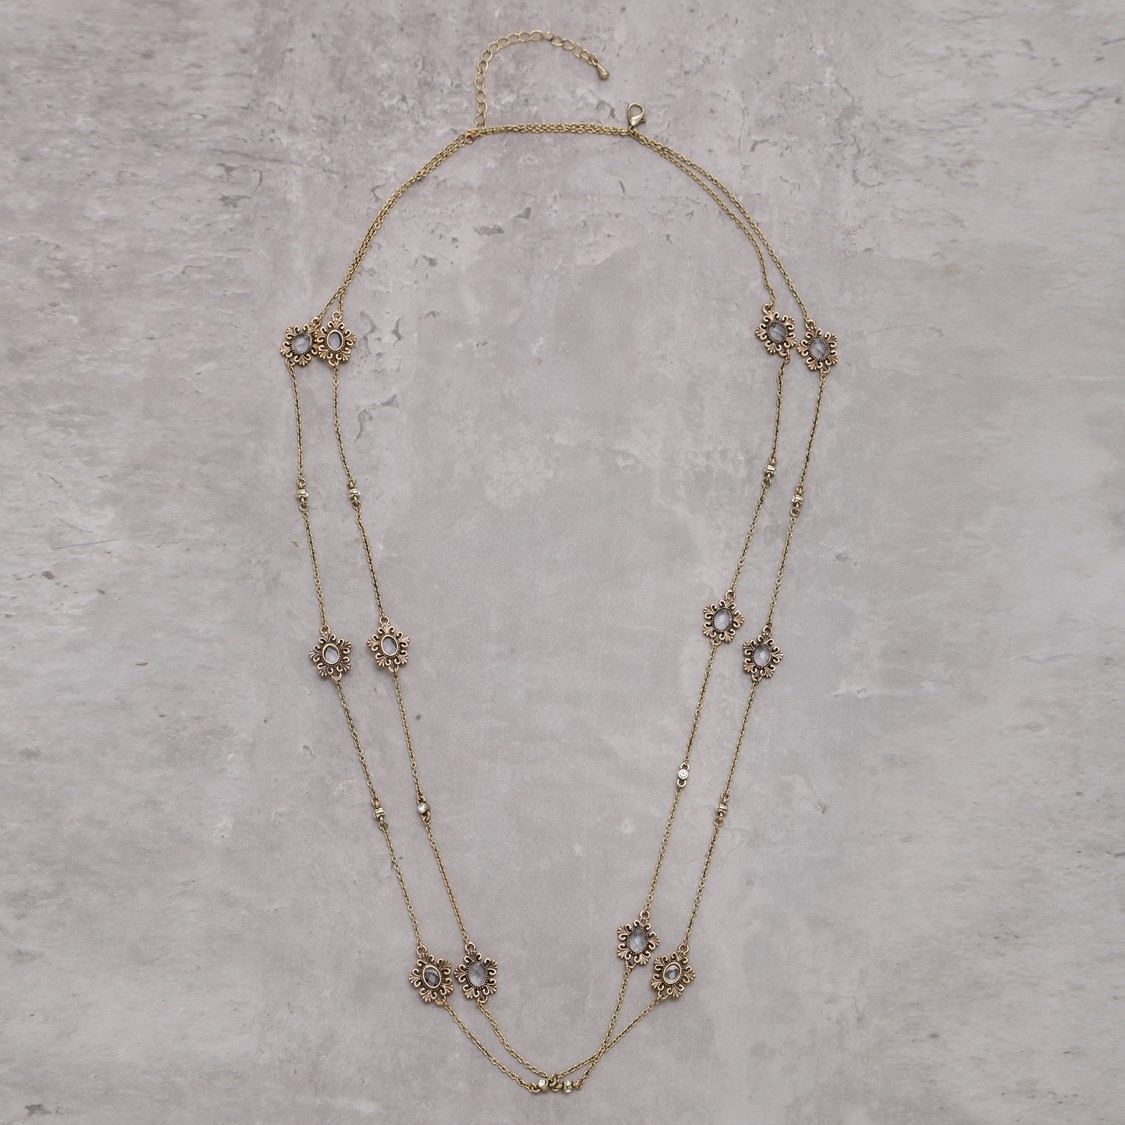 Double Layer Long Necklace with Lobster Clasp